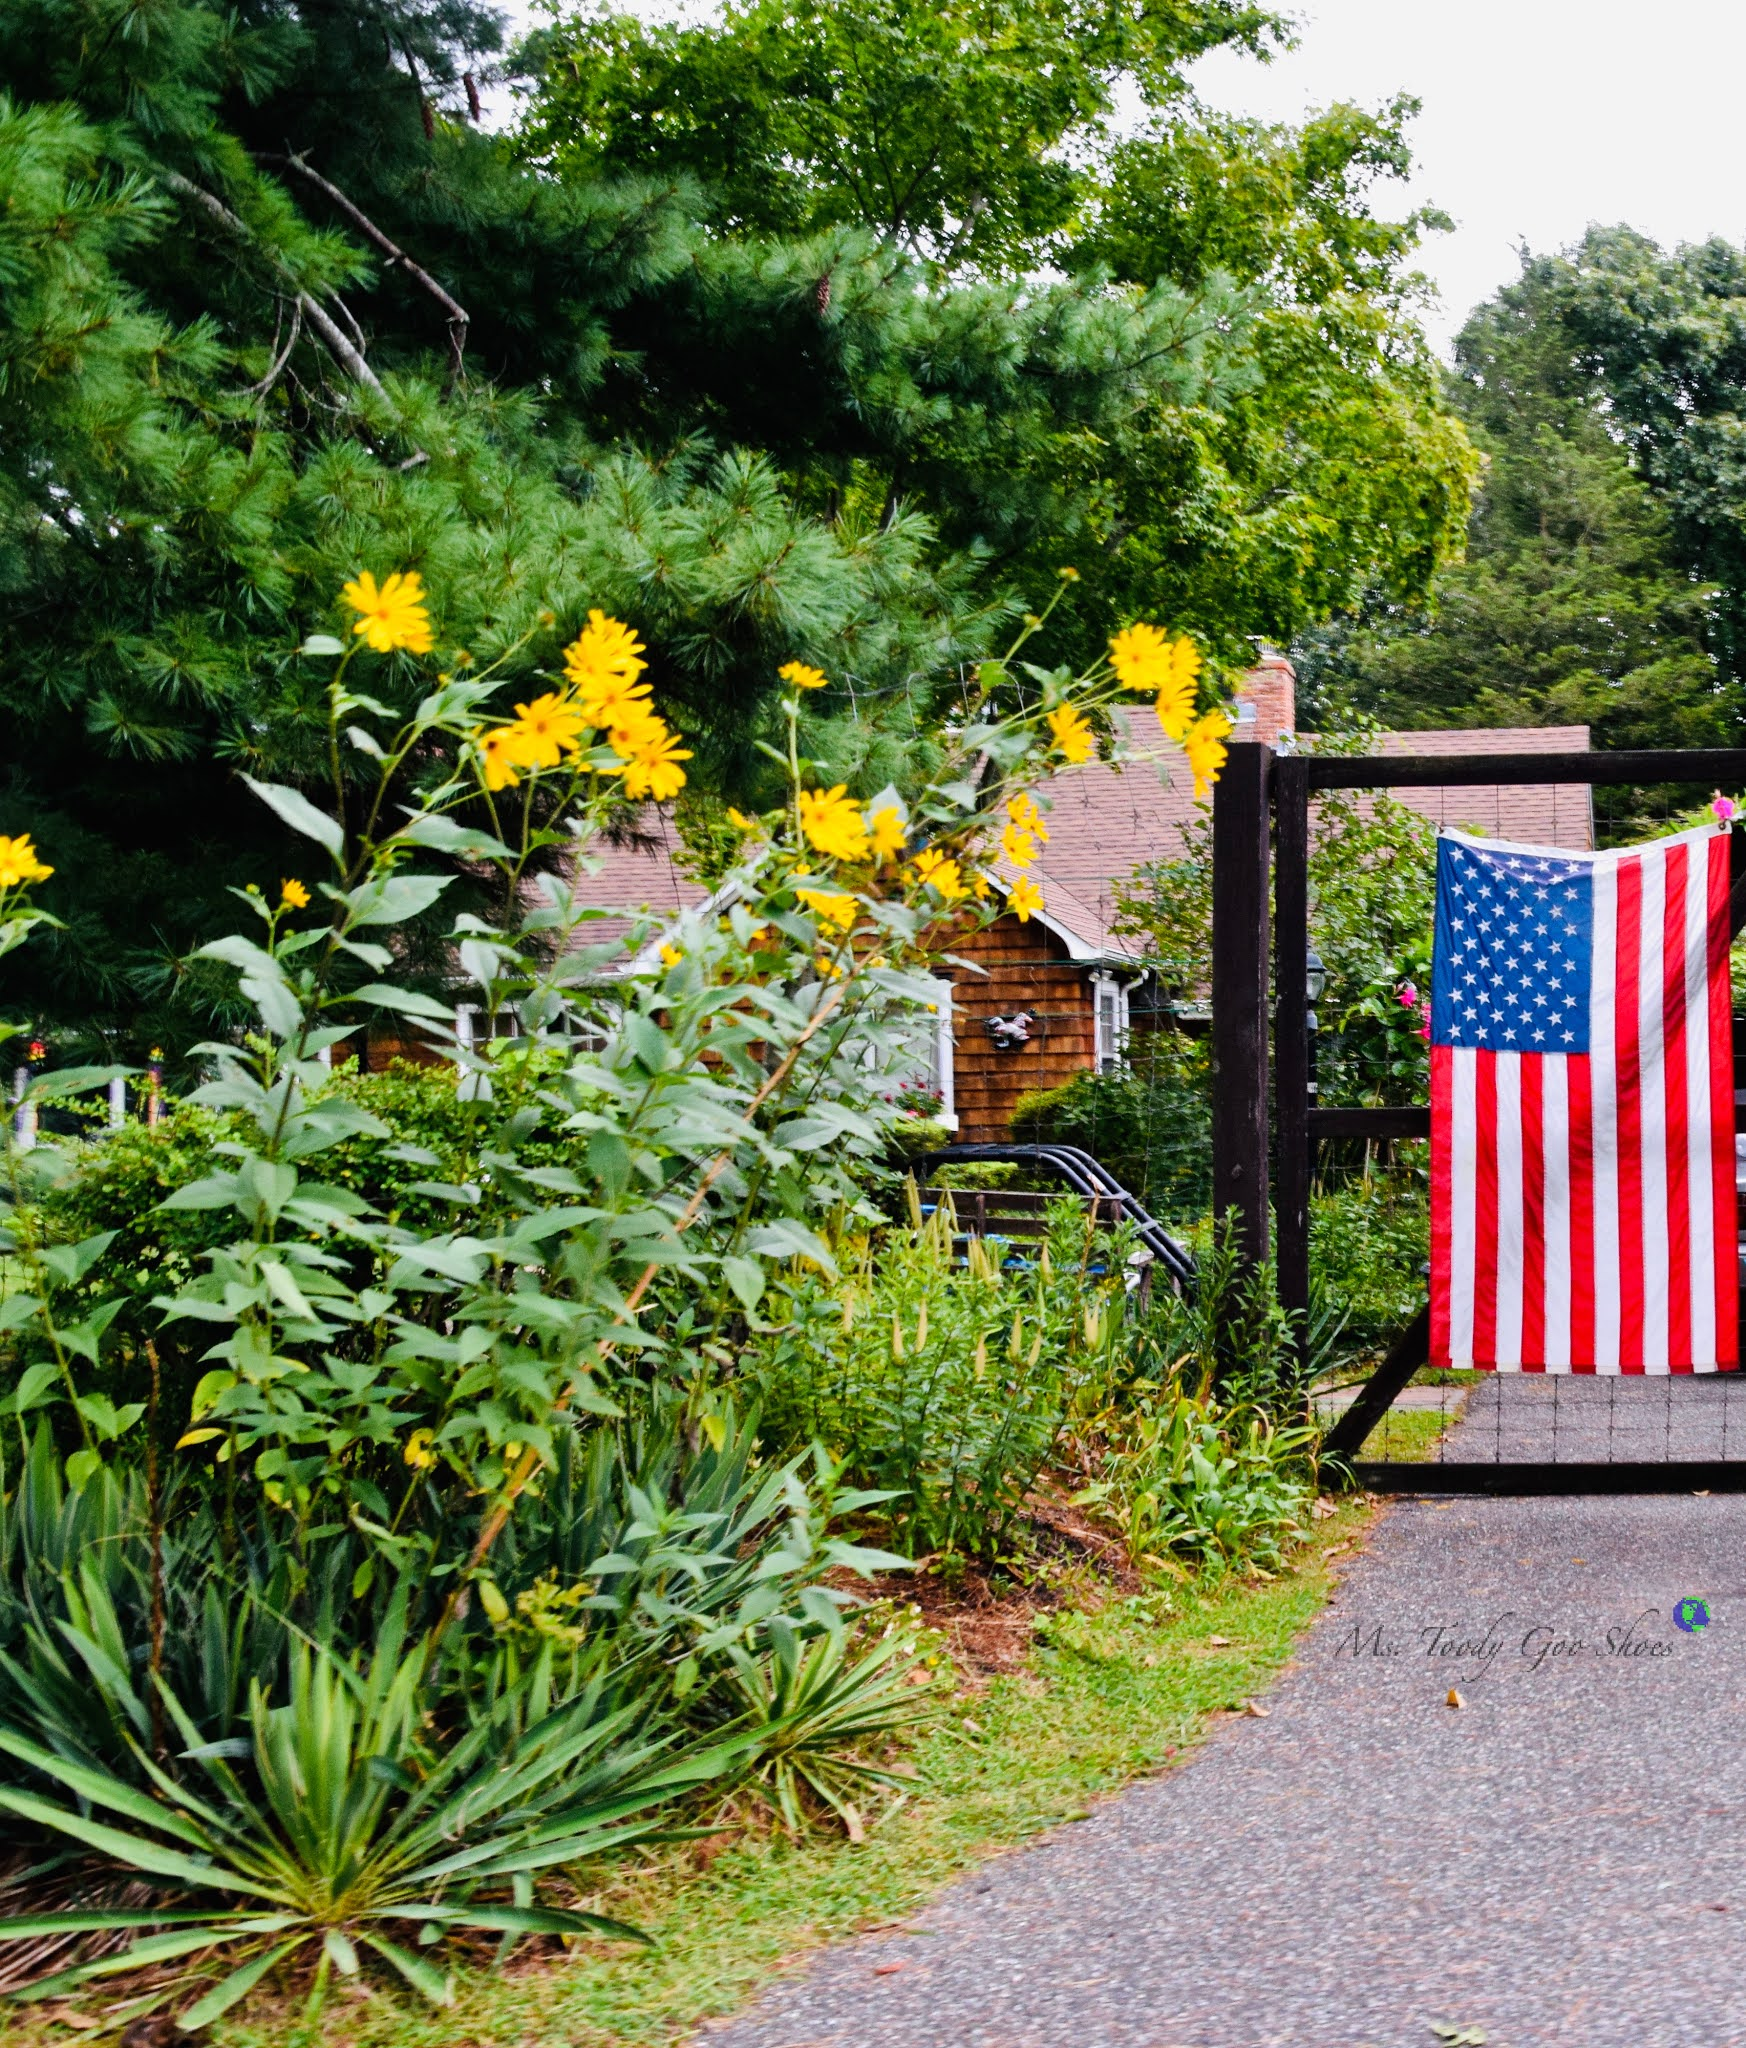 American Flags, Shelter Island, NY | Ms. Toody Goo Shoes